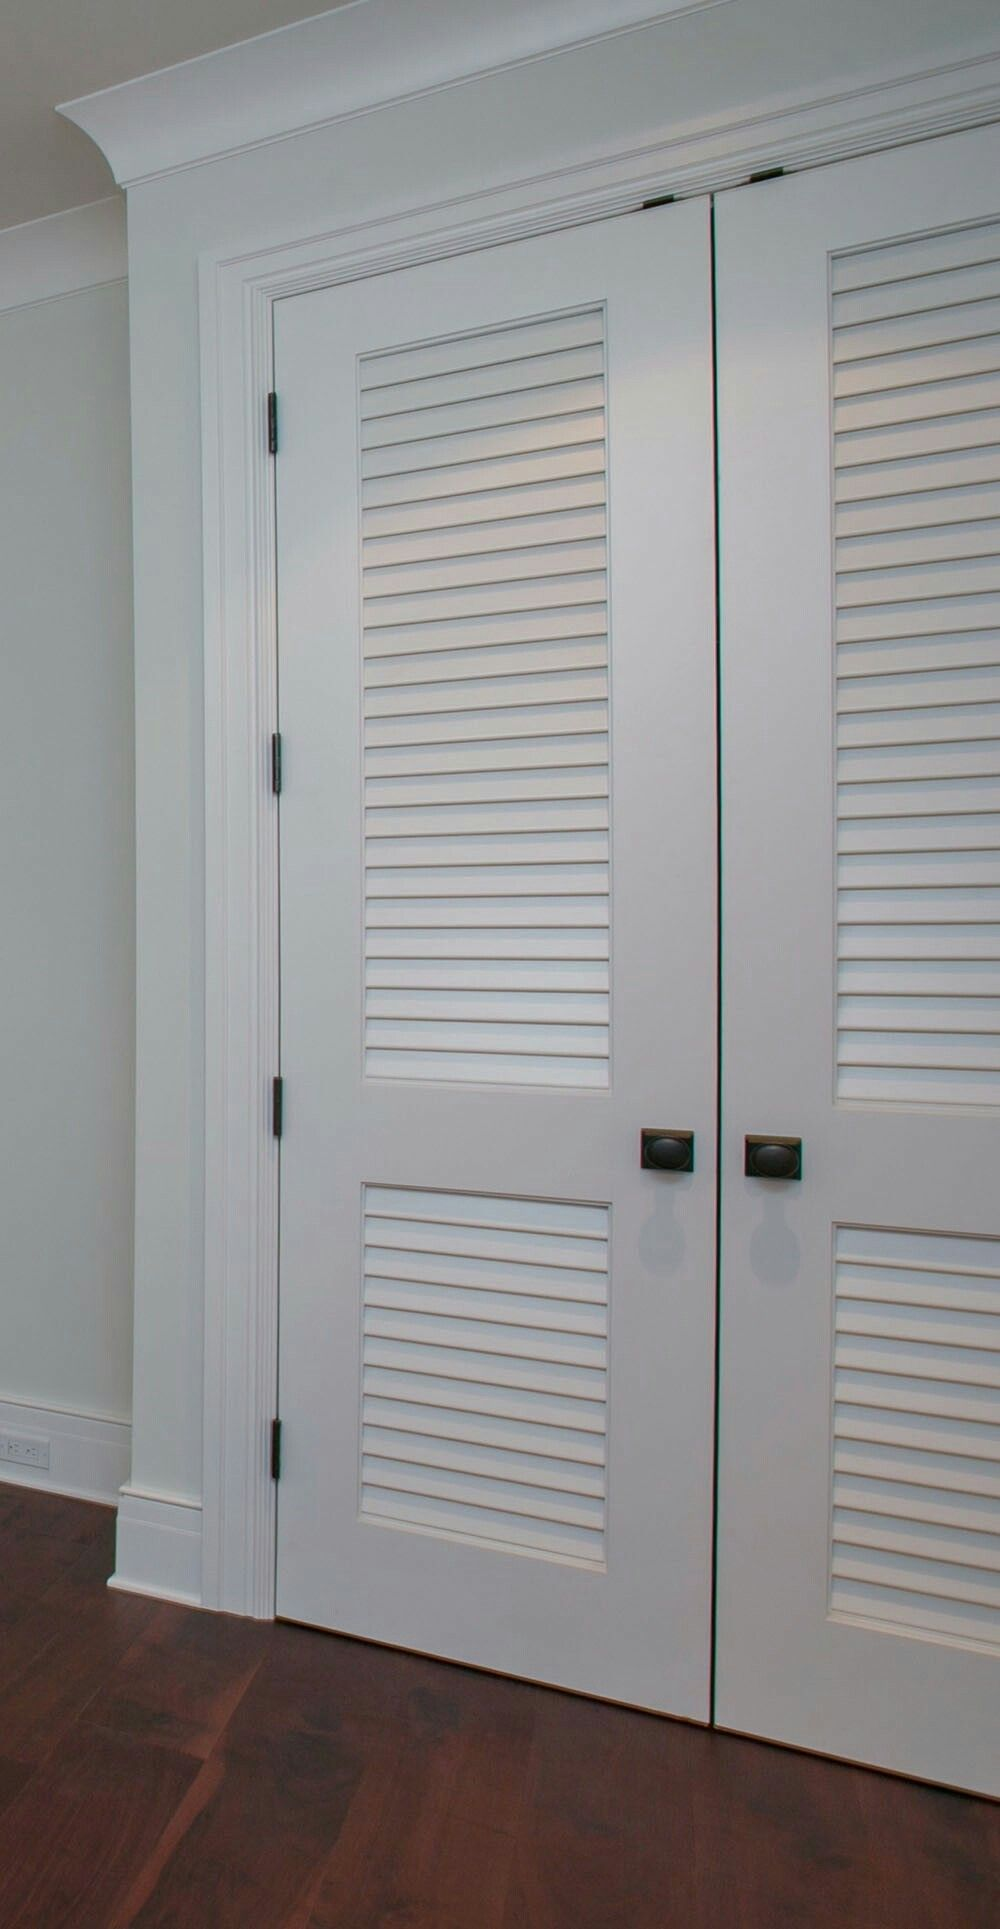 Bat Louvered Door Ventilation From Playroom To Laundry Utility Room